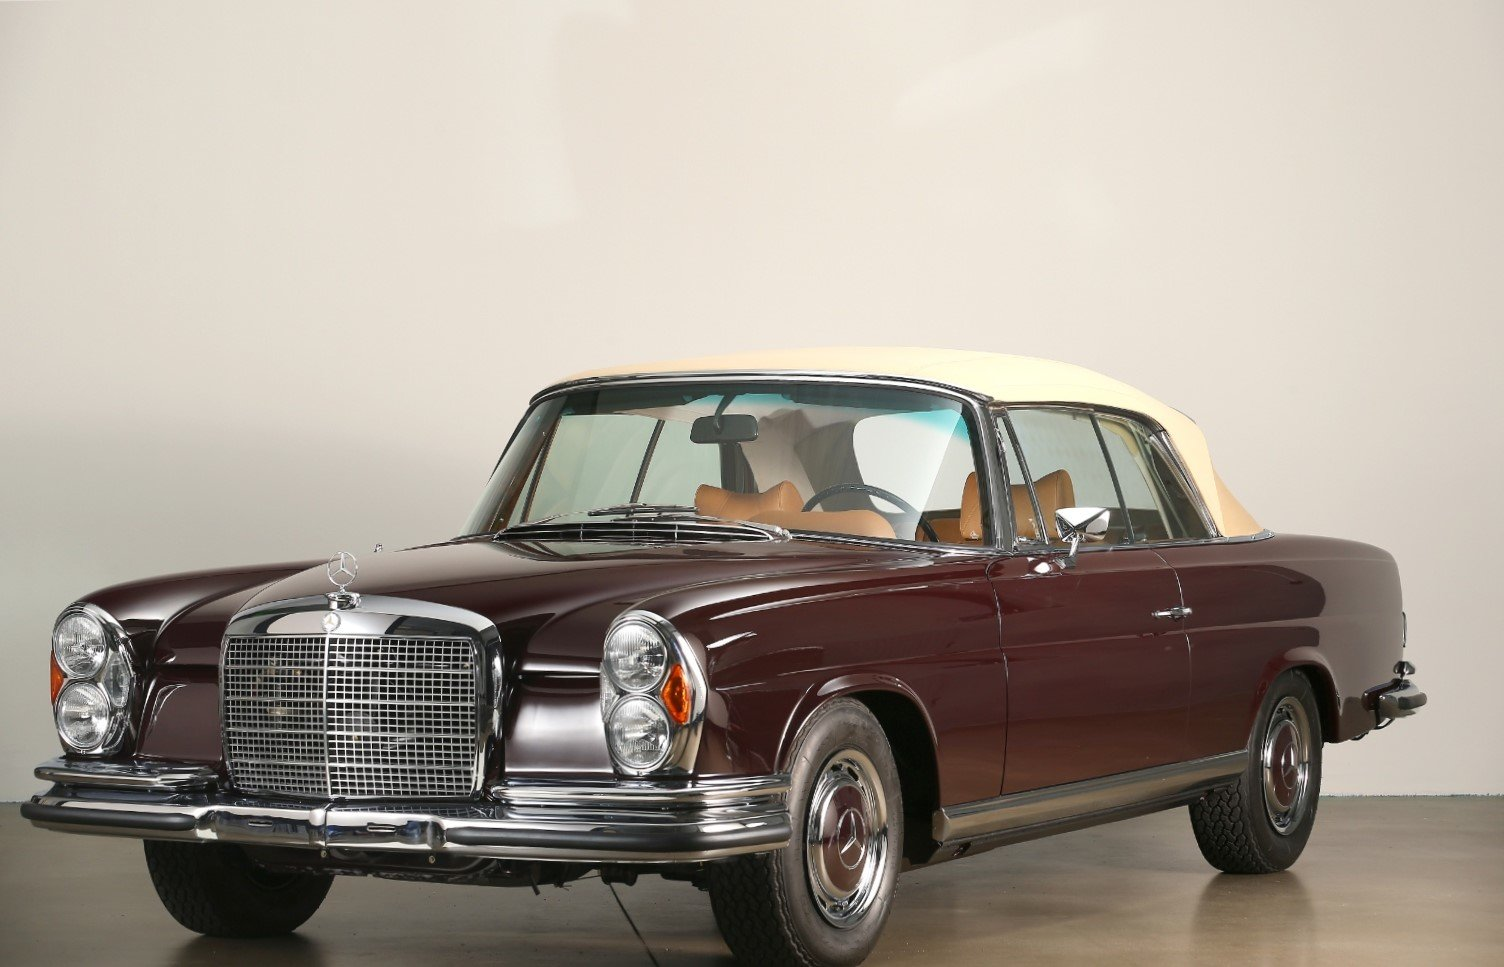 1970 280 SE W111 Concourse Restored - Collector's item For Sale (picture 6 of 6)